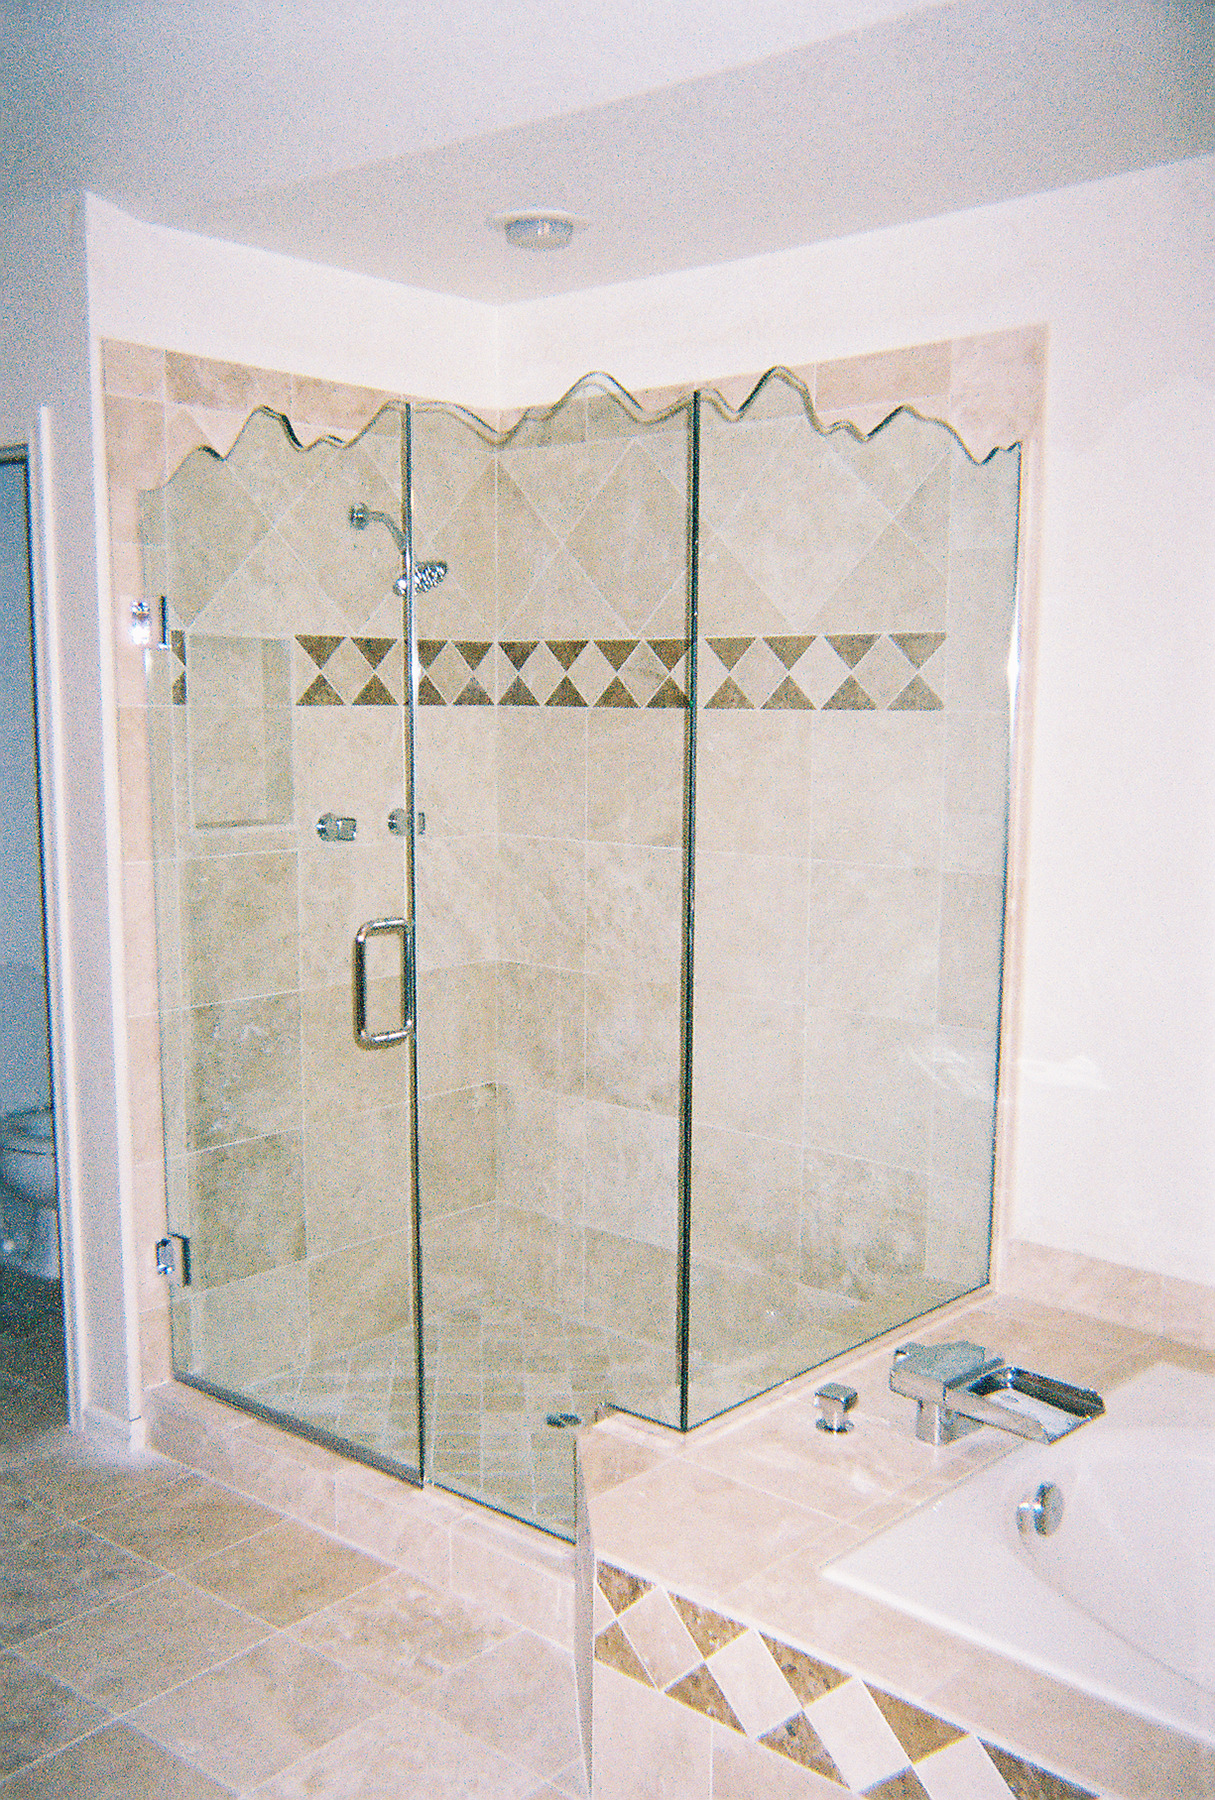 clayton glass surprise azu0027s premier shower enclosure company